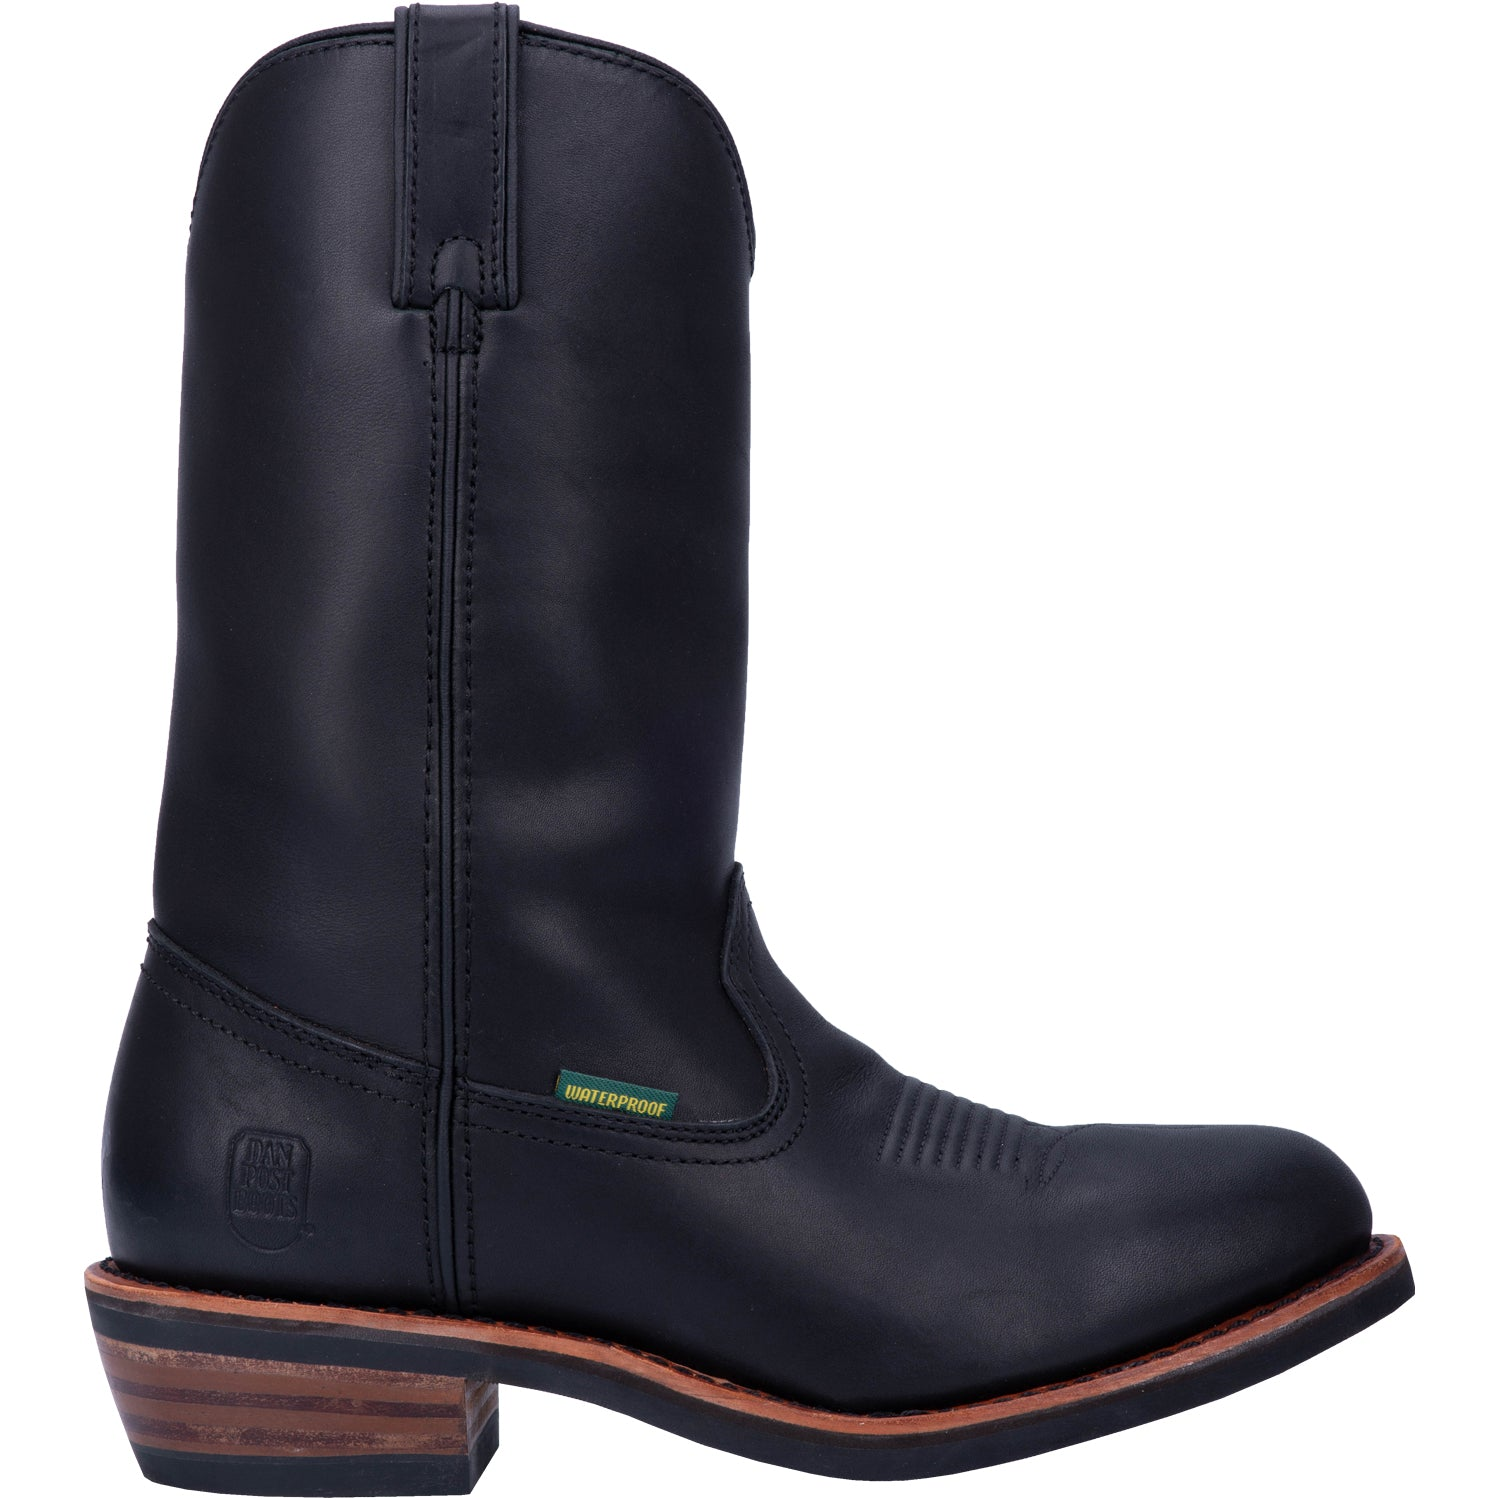 ALBUQUERQUE WATERPROOF LEATHER BOOT 4248832835626